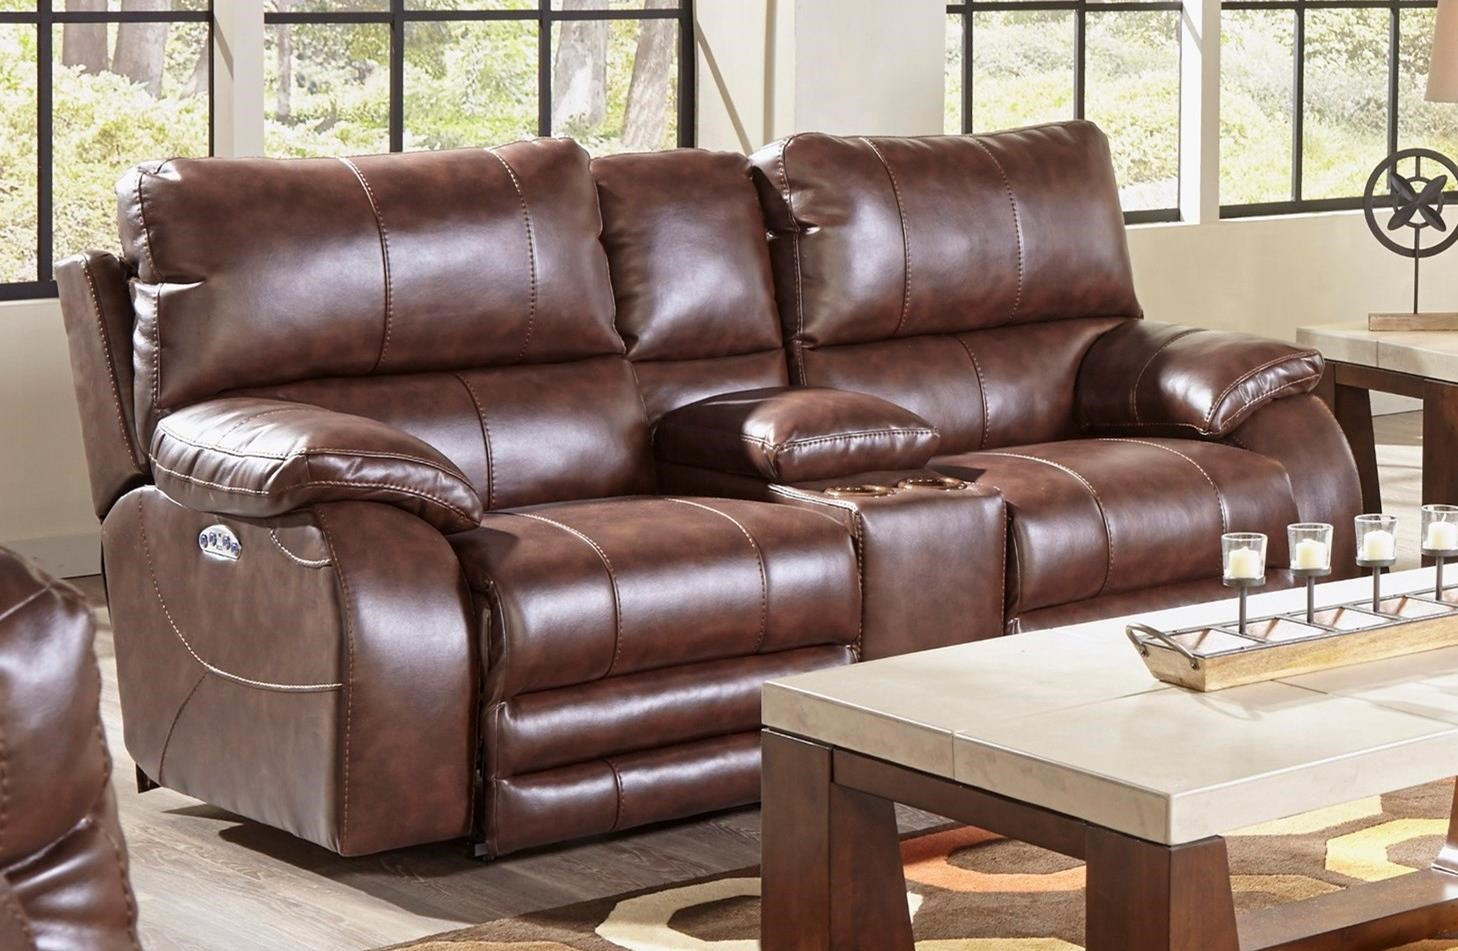 catnapper sofas and loveseats high sleeper with double sofa bed reclining collection 64279 loveseat